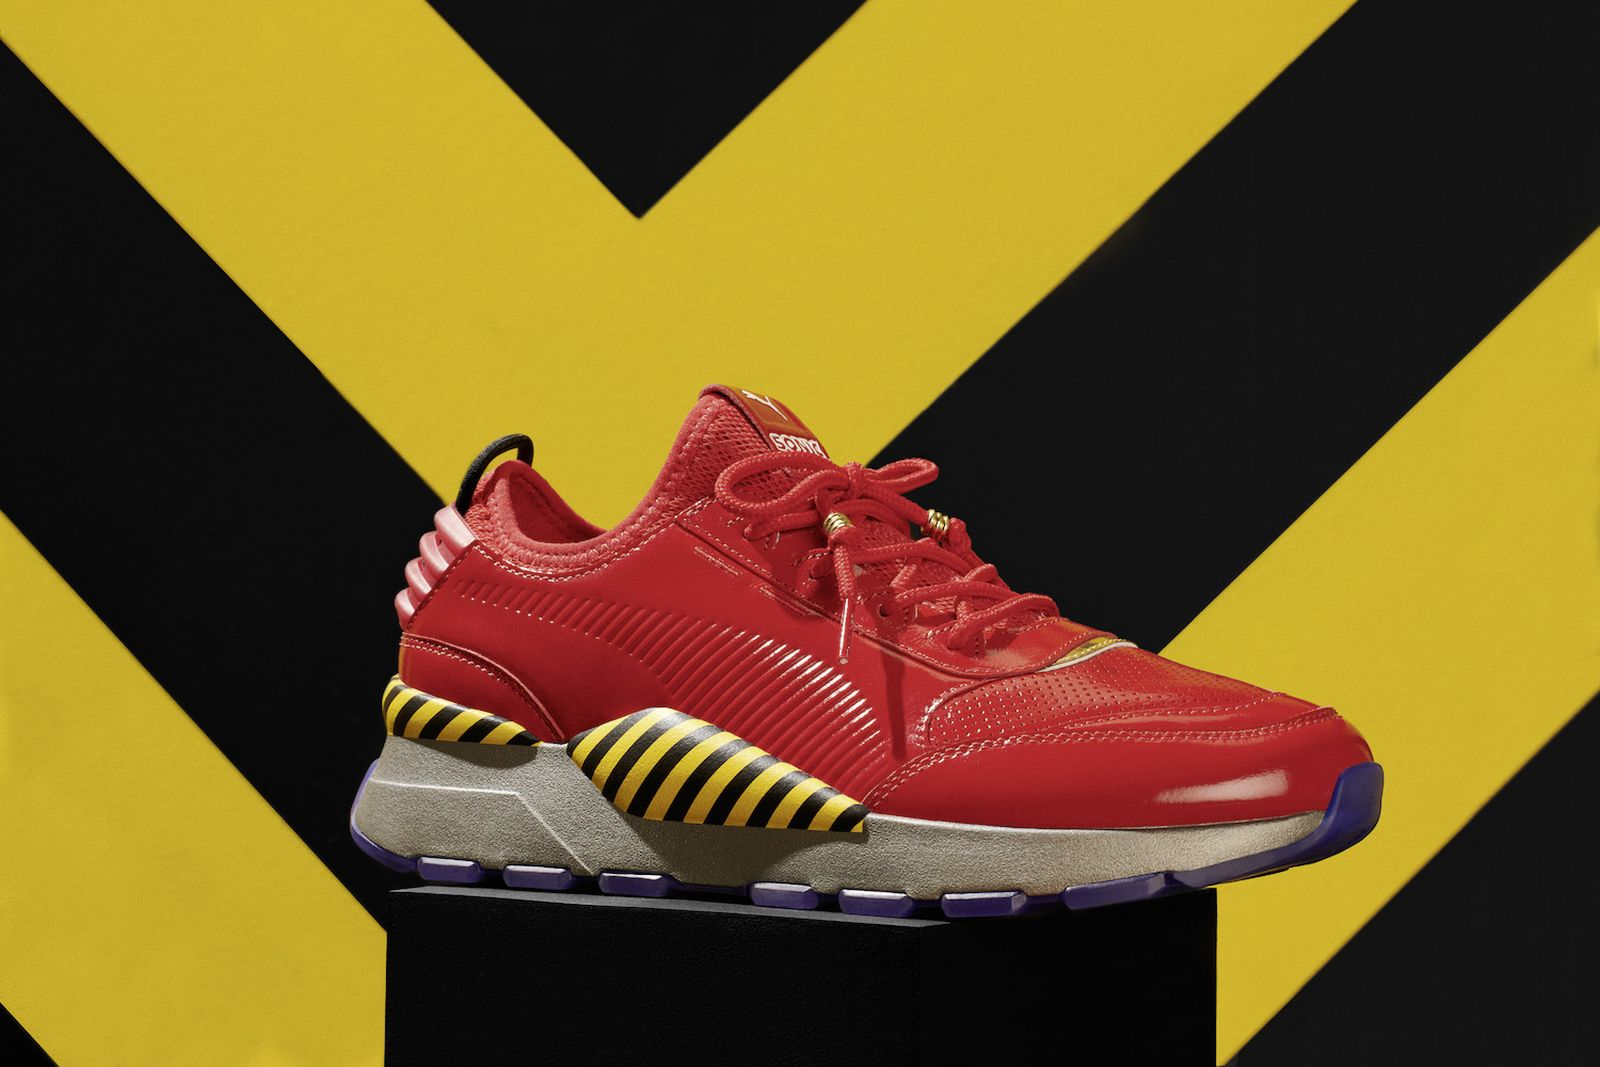 puma-sega-rs-0-sonic-and-dr-eggman-release-date-price-06